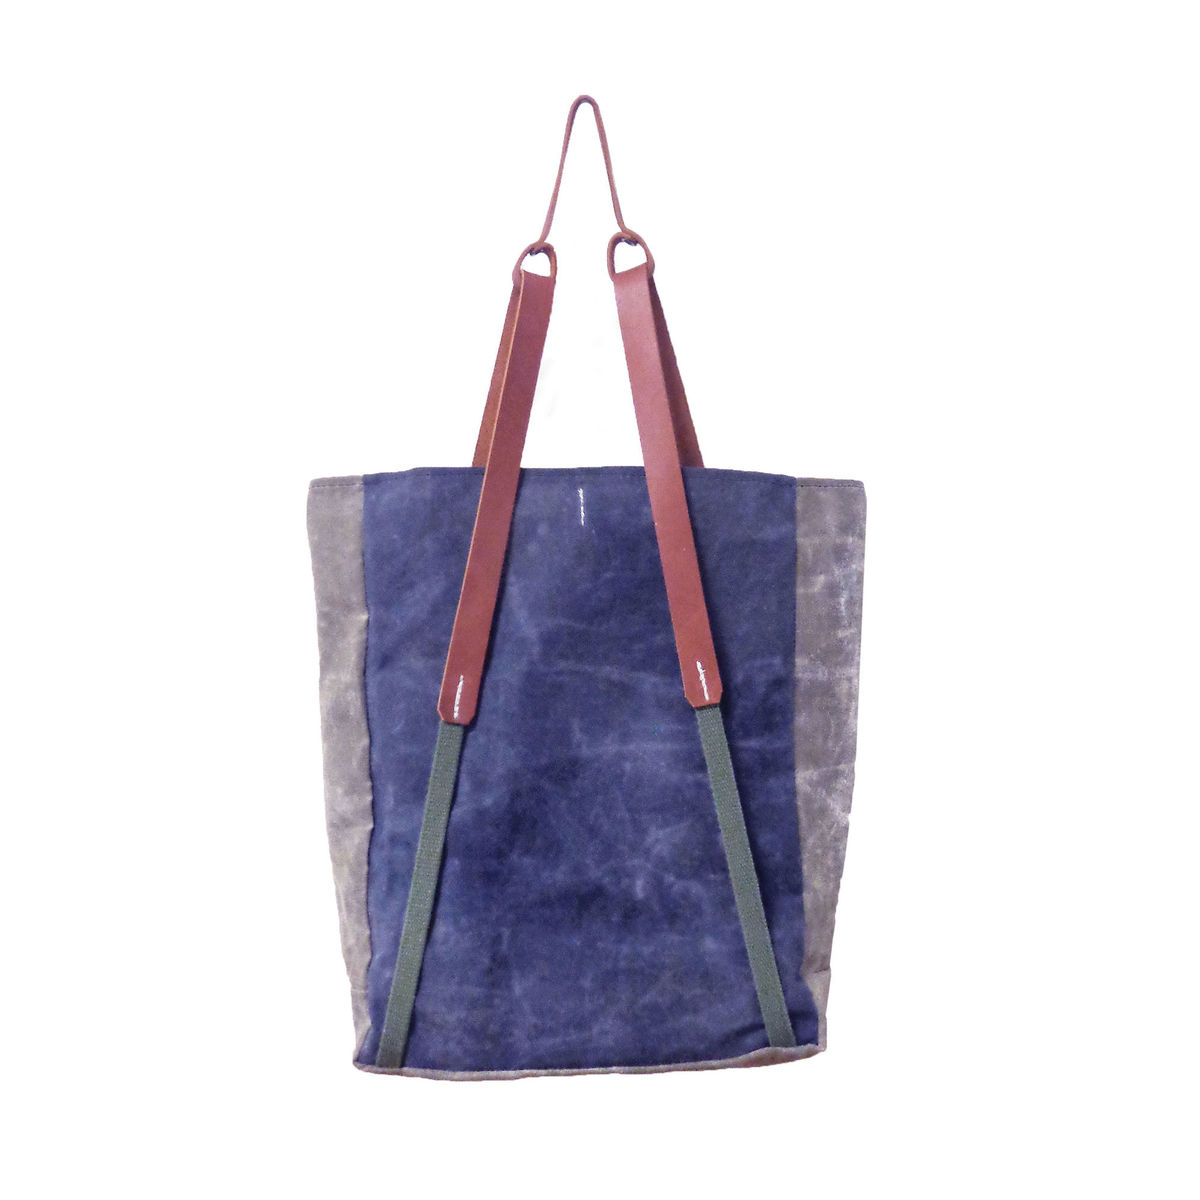 Convertible Bodega Tote, Backpack - Indigo Dot - product images  of